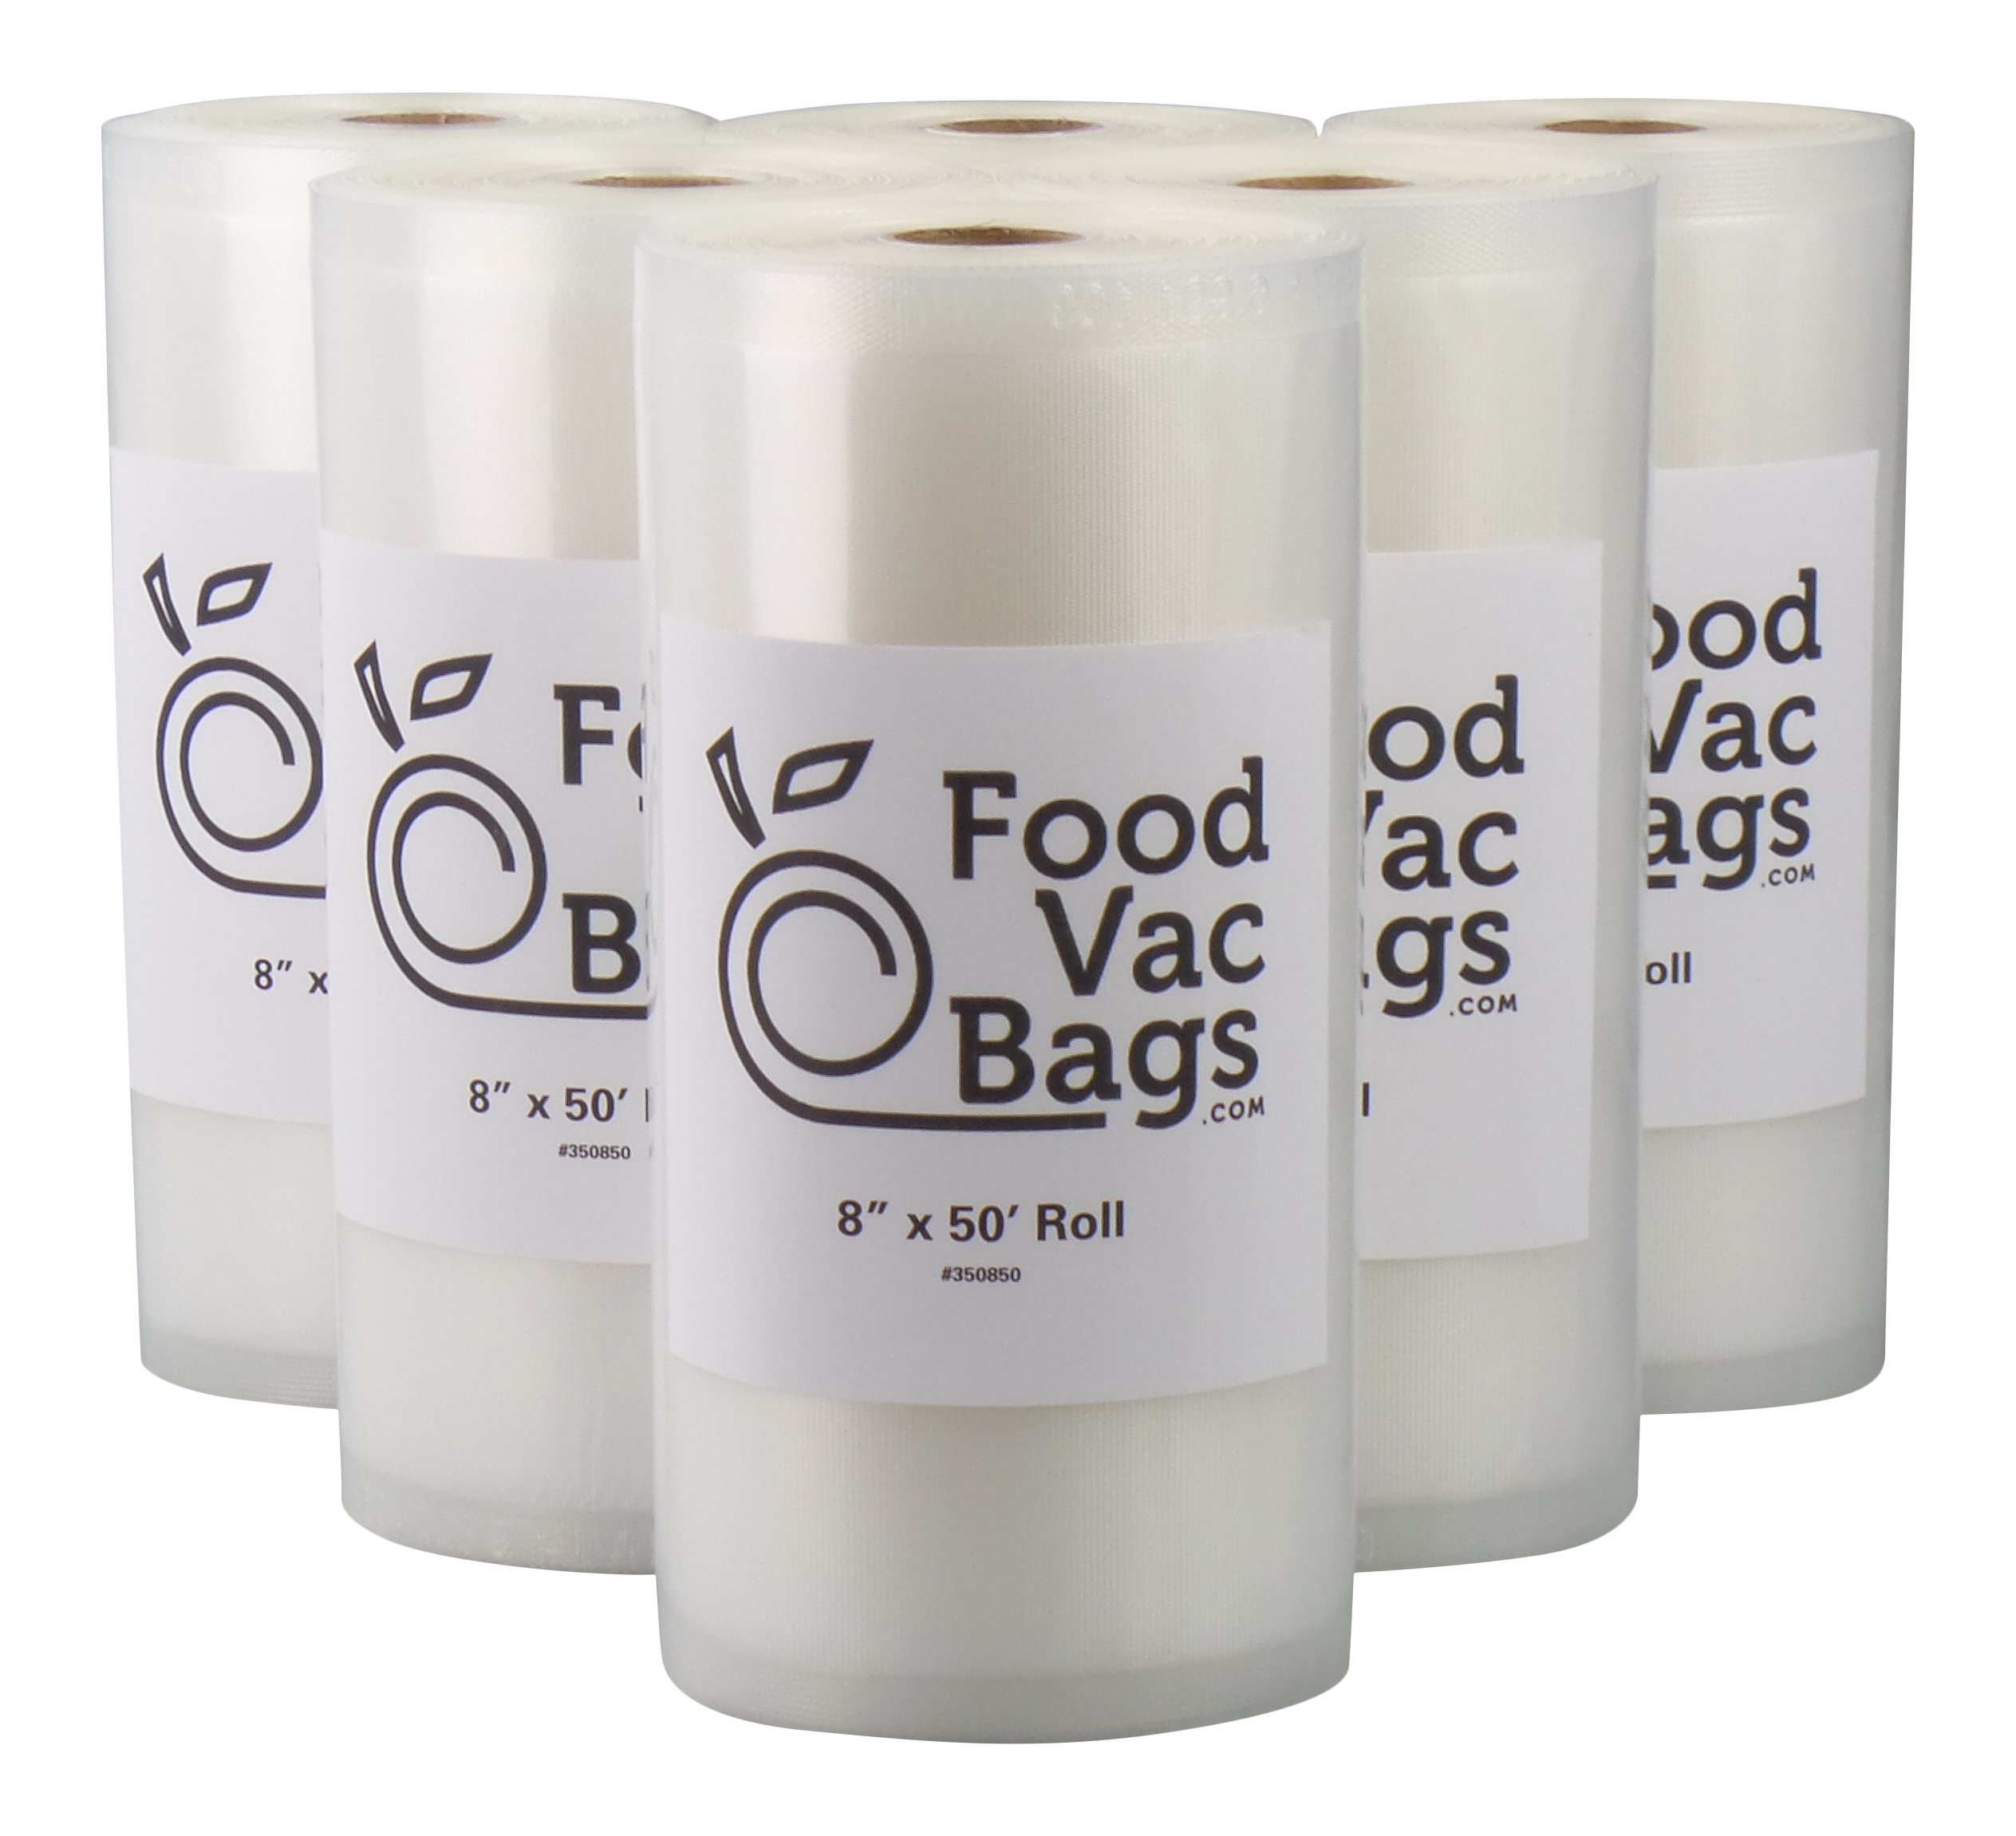 Twelve 50' Rolls Vacuum Food Sealer Bags Embossed 4 mil Commercial Grade Six 8'' X 50' and Six 11'' X 50' by FoodVacBags (Image #2)